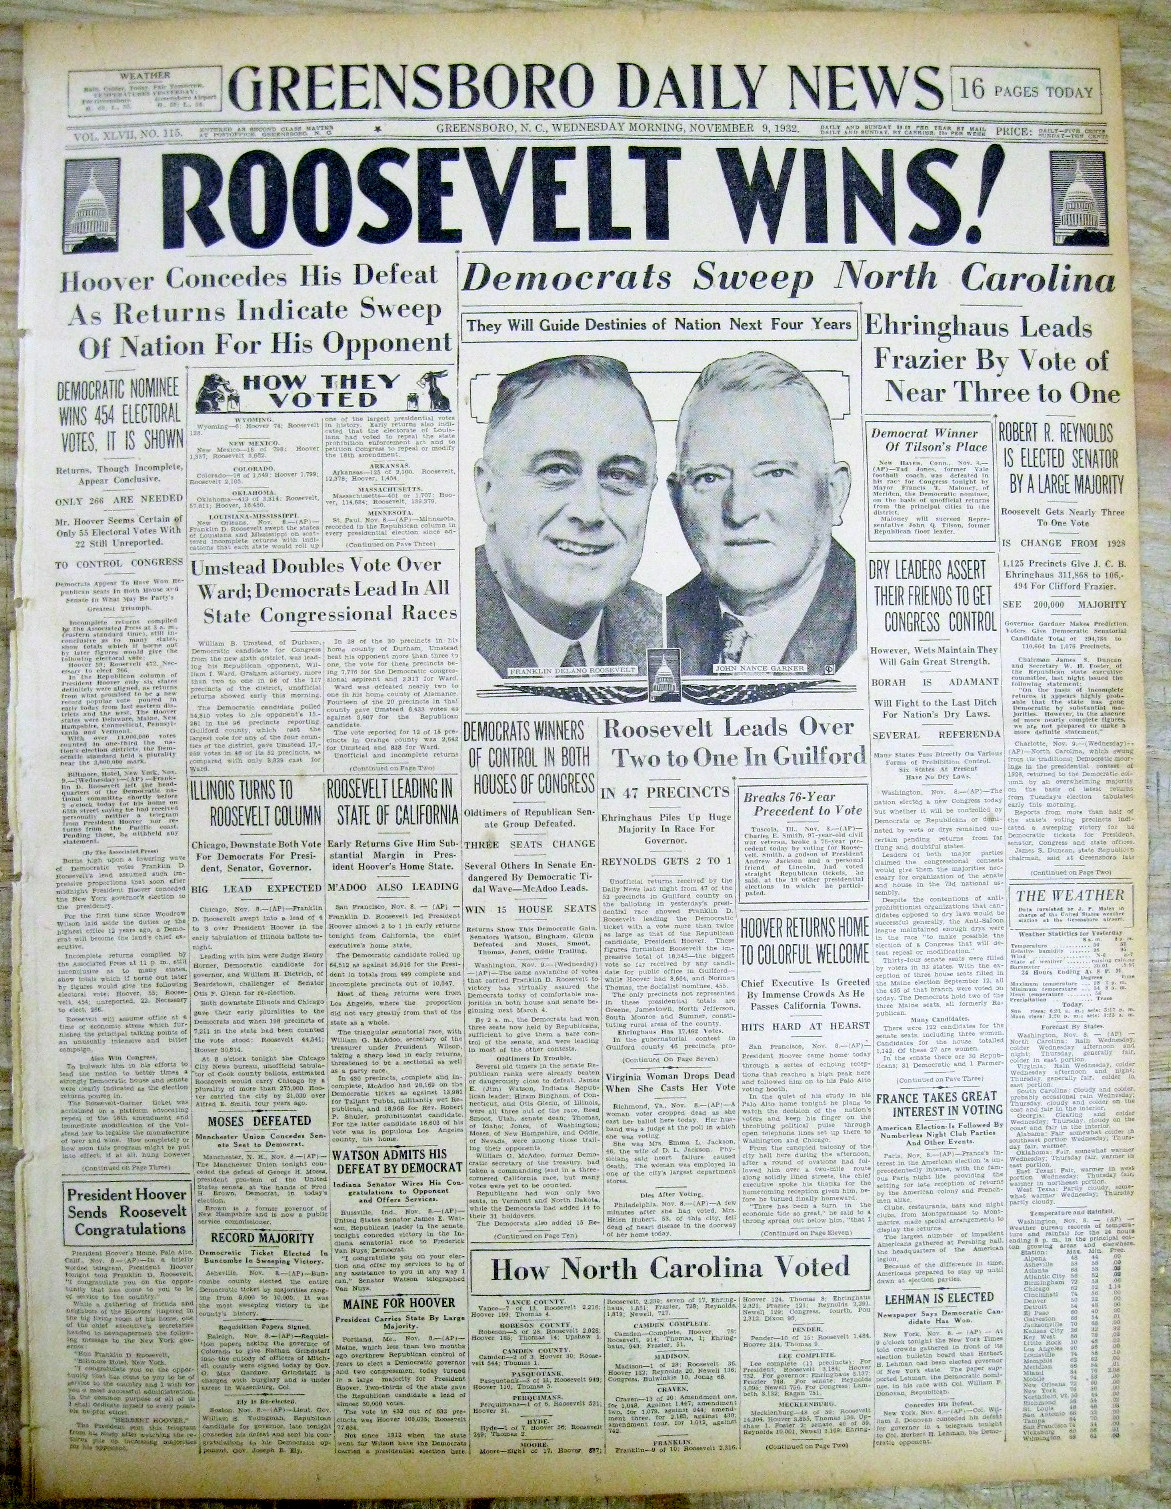 hoover roosevelt and the great depression essay Hoover also started federal work projects such as the grand coulee dam and the hoover dam these projects provided many jobs for people and provided affordable hydroelectric power for people but the great depression was a much bigger problem than a few extra job openings could fix.